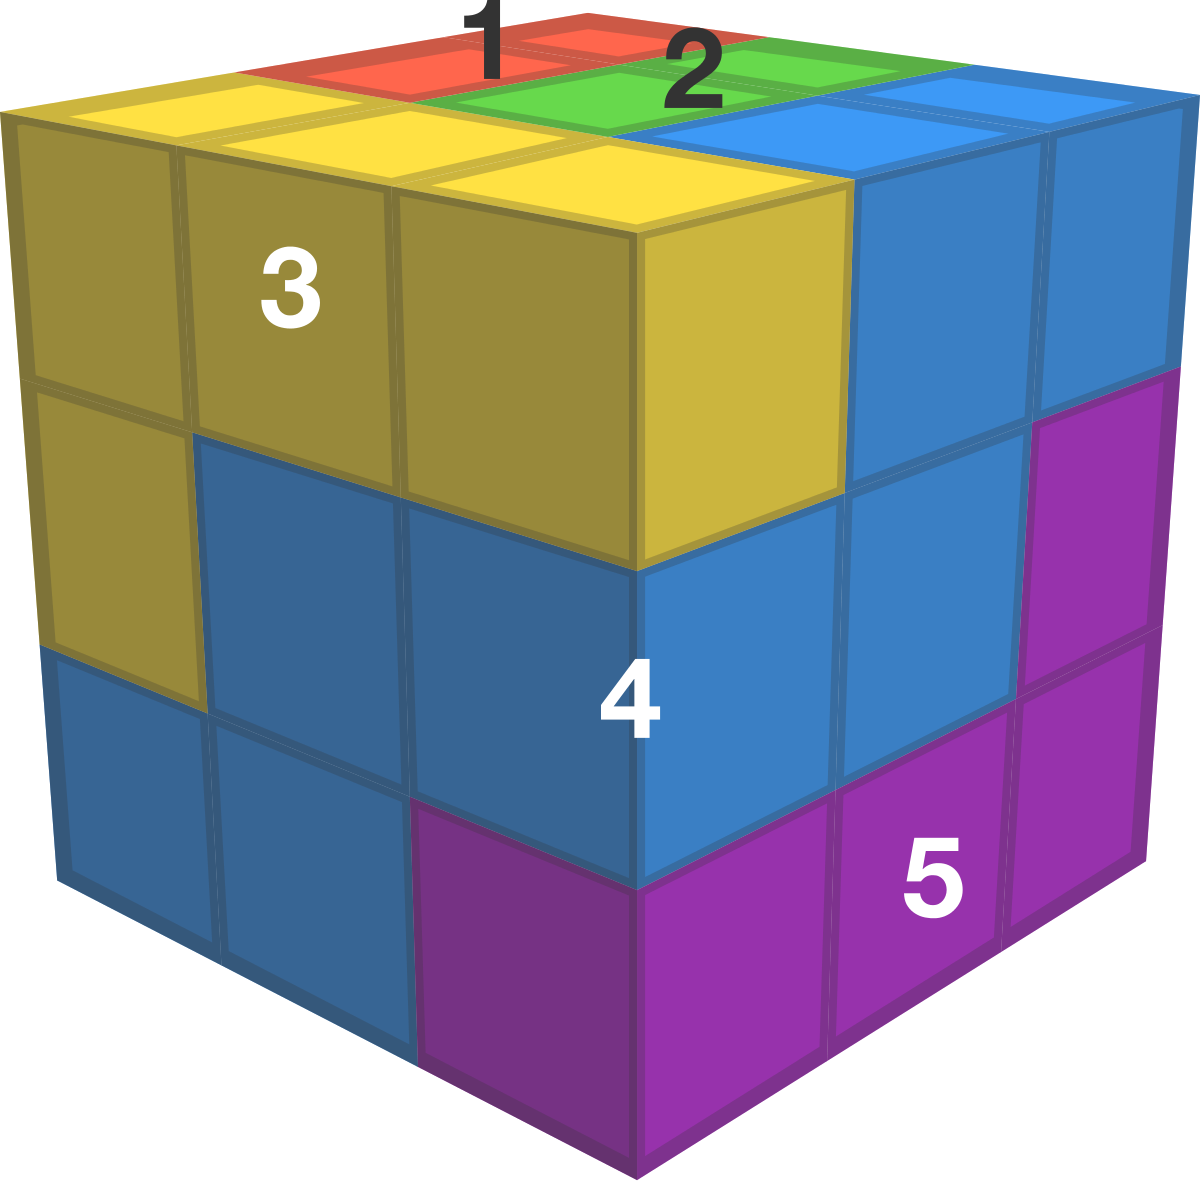 An NEU path tiling of a \(3 \times 3 \times 3\) cube with 7 paths (paths 6 and 7 are hidden from view)